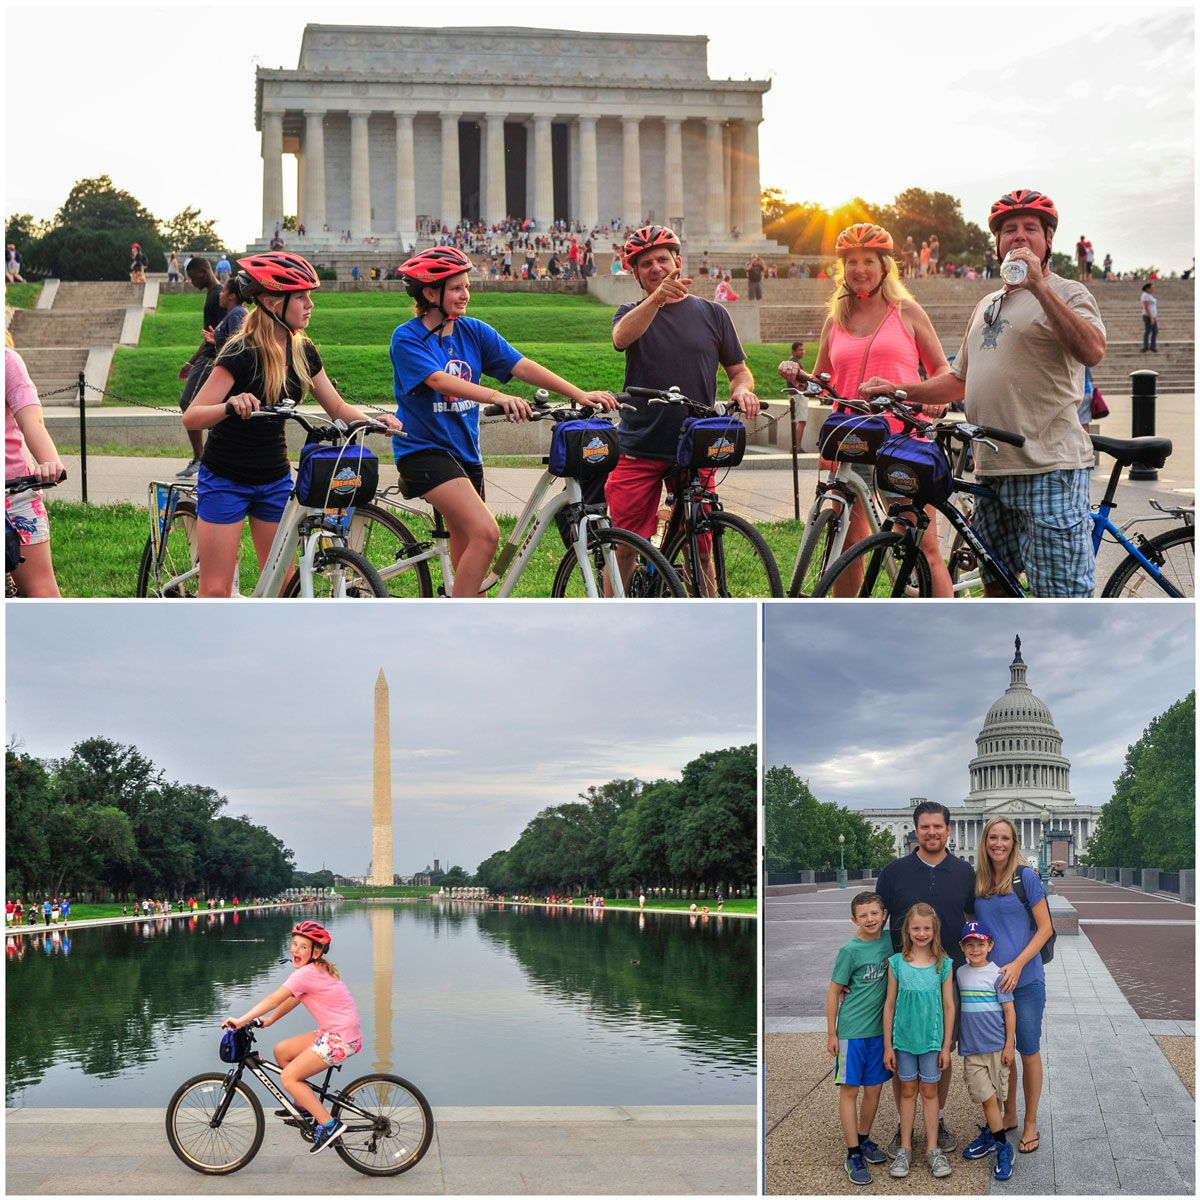 Family taking a bike tour through DC, in front of Washington National Monument, the Lincoln Memorial and the Capitol Building